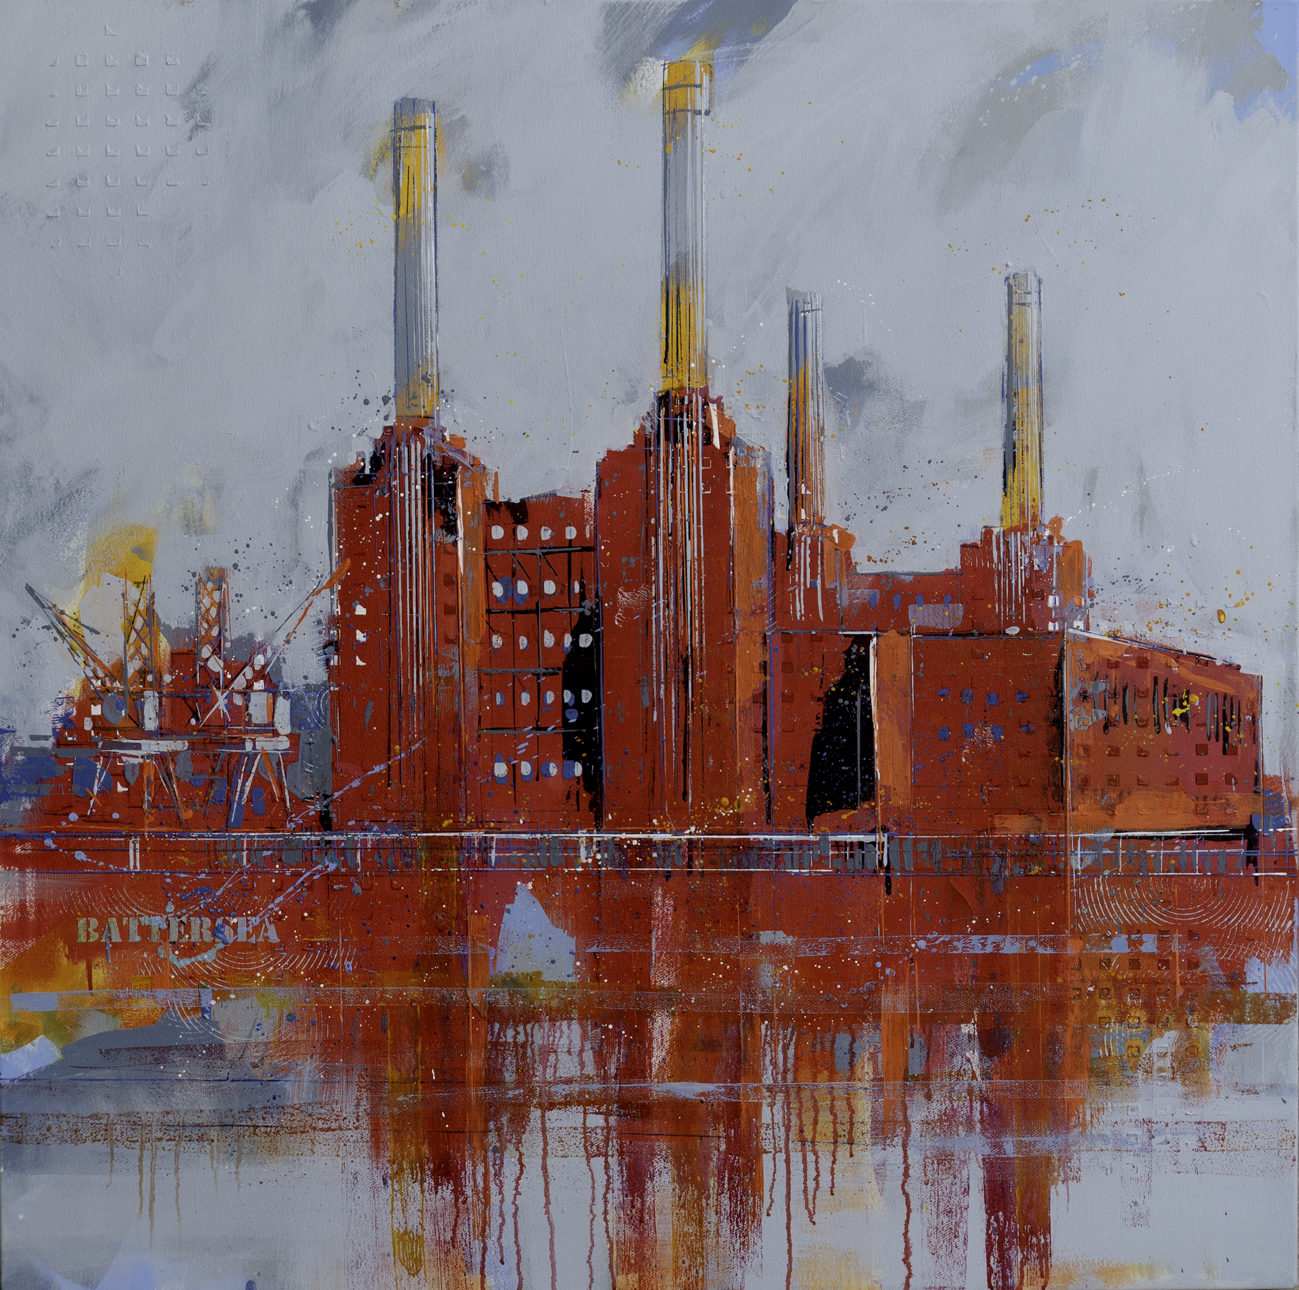 Battersea Red - sold